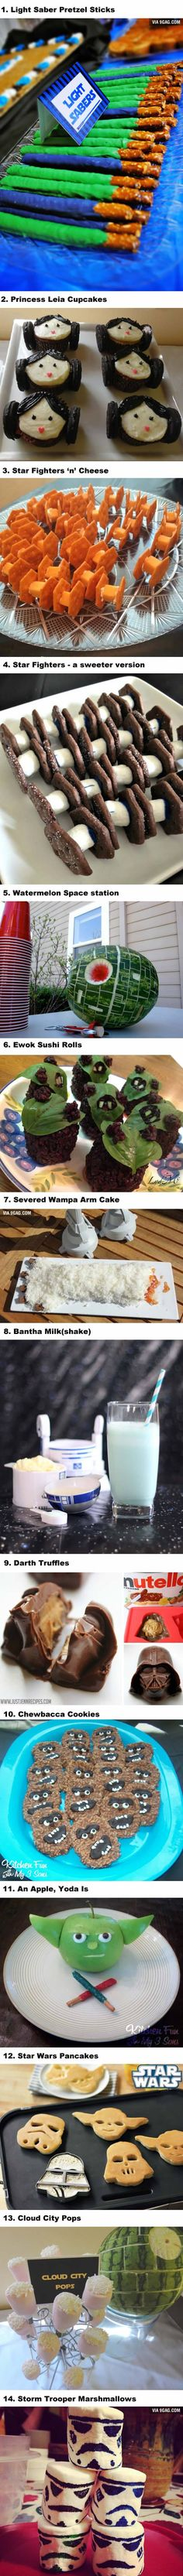 14 Star Wars Snacks To Prepare On Star Wars Day! (May The Fourth)